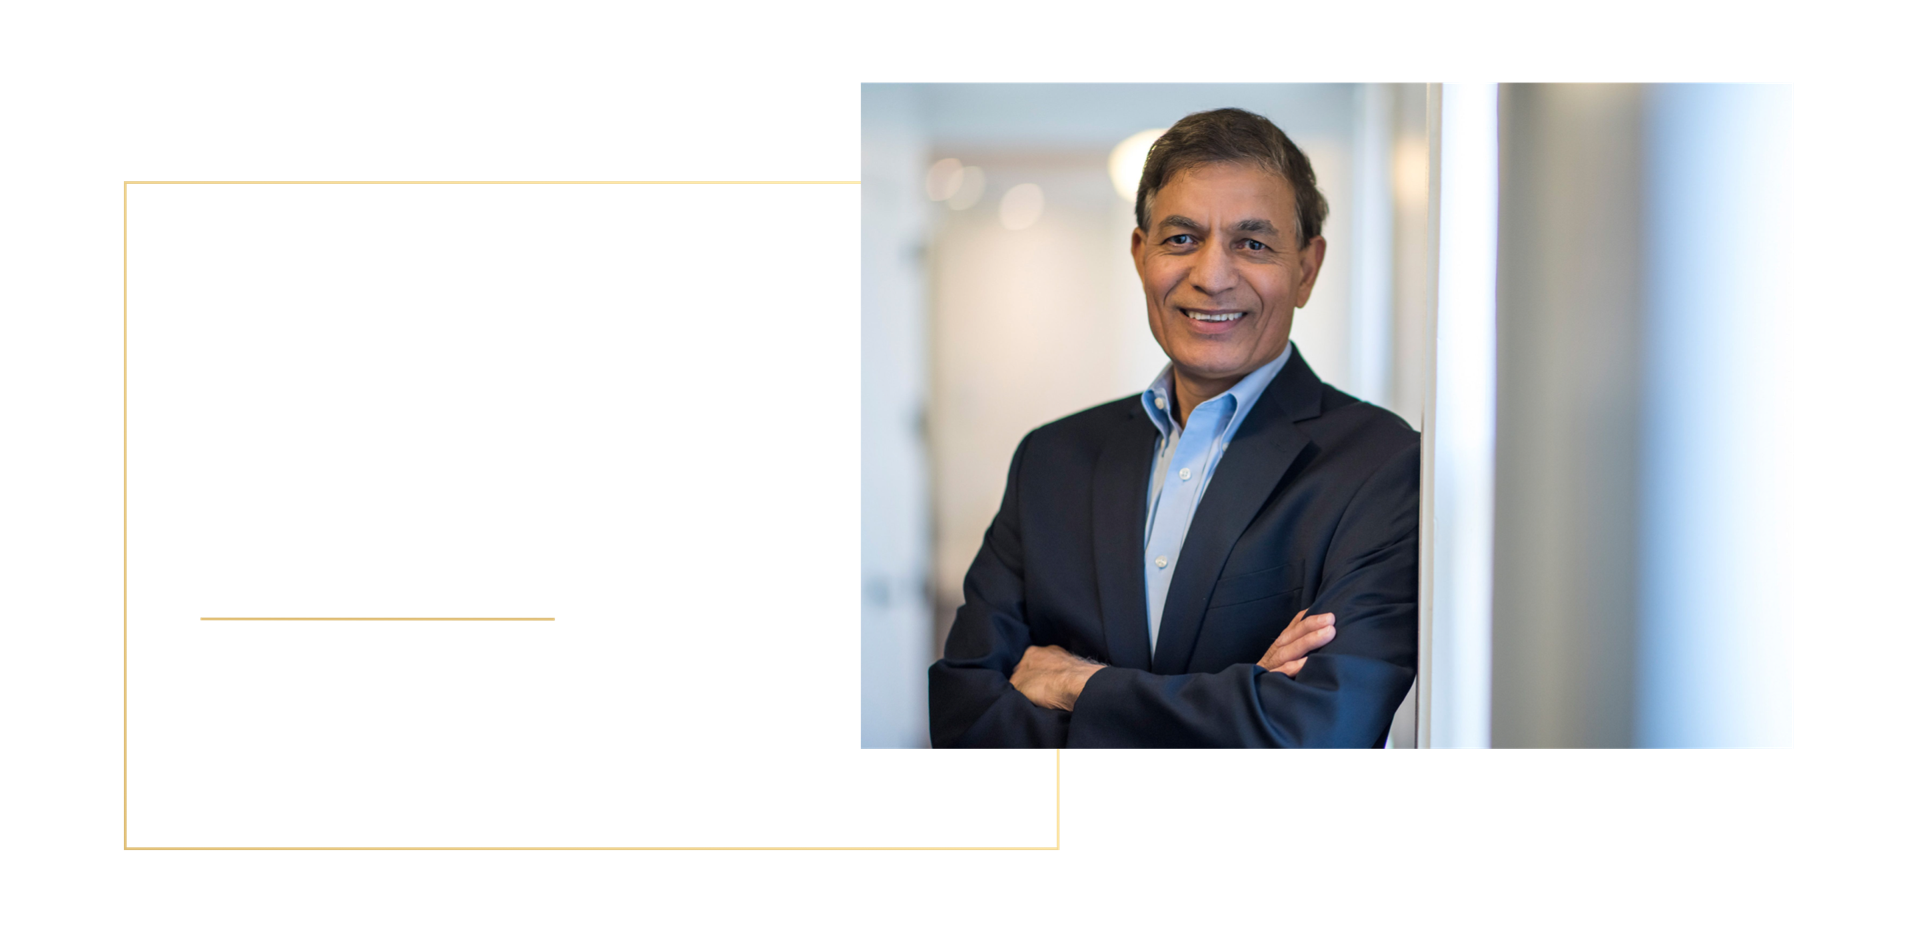 Jay Chaudhry: Founder, Chairman and CEO of Zscaler Net worth: $3.6 billion